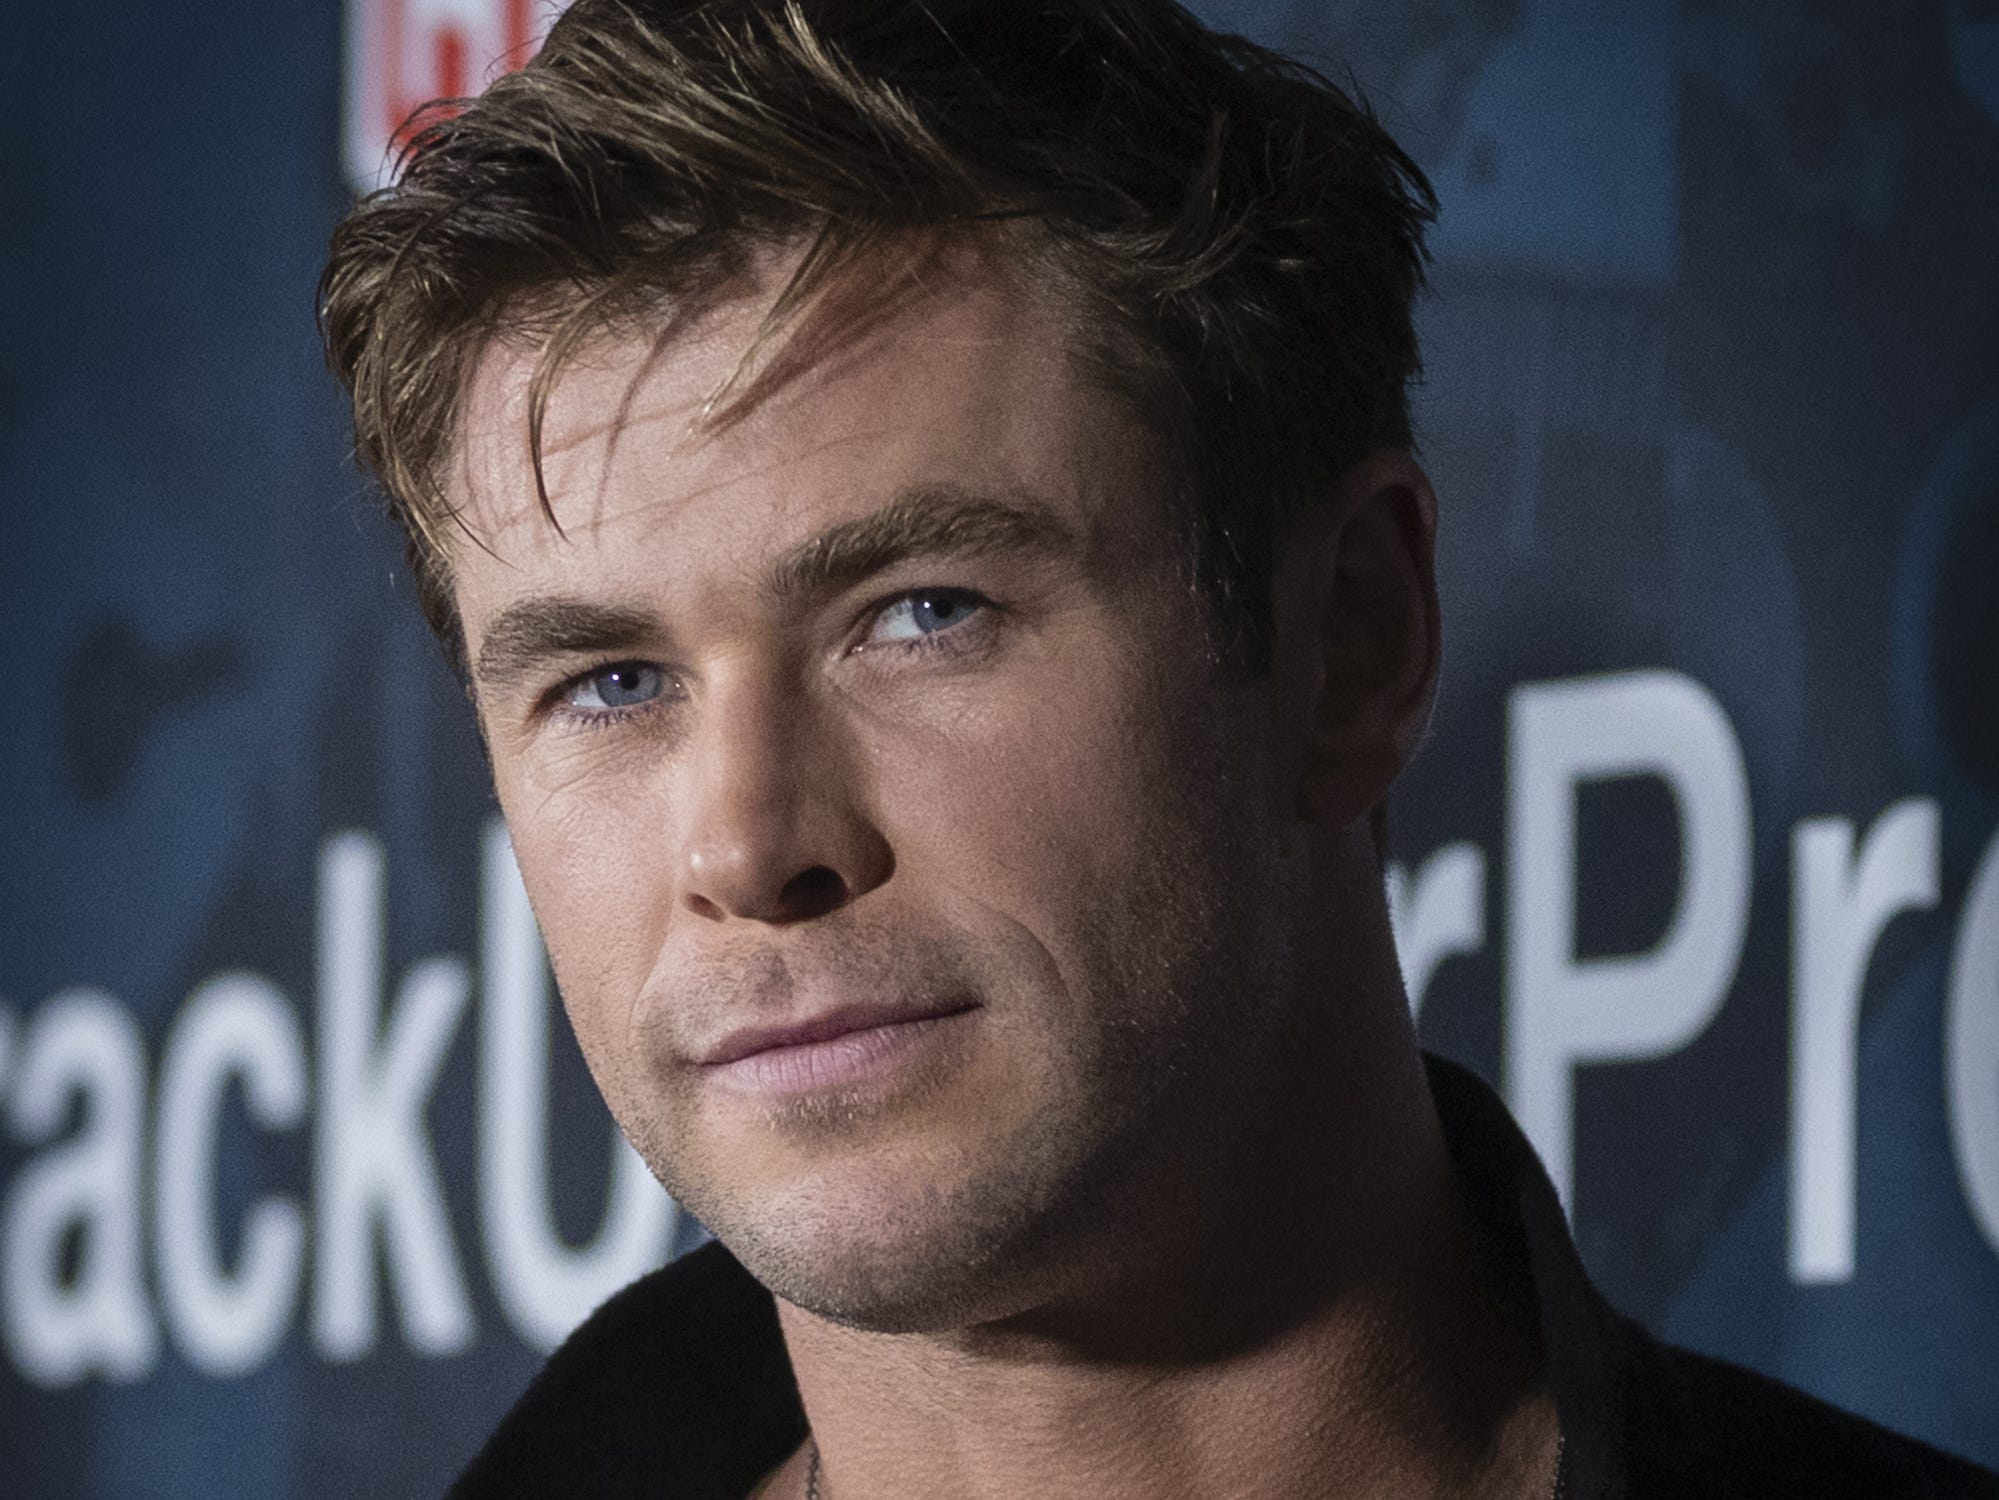 SYDNEY, NEW SOUTH WALES - JUNE 06:  Chris Hemsworth attends the TAG Heuer 'Museum In Motion' Australian Launch at Museum of Contemporary Art on June 6, 2018 in Sydney, Australia.  (Photo by Brook Mitchell/Getty Images for TAG Heuer) ORG XMIT: 775170125 ORIG FILE ID: 968400056